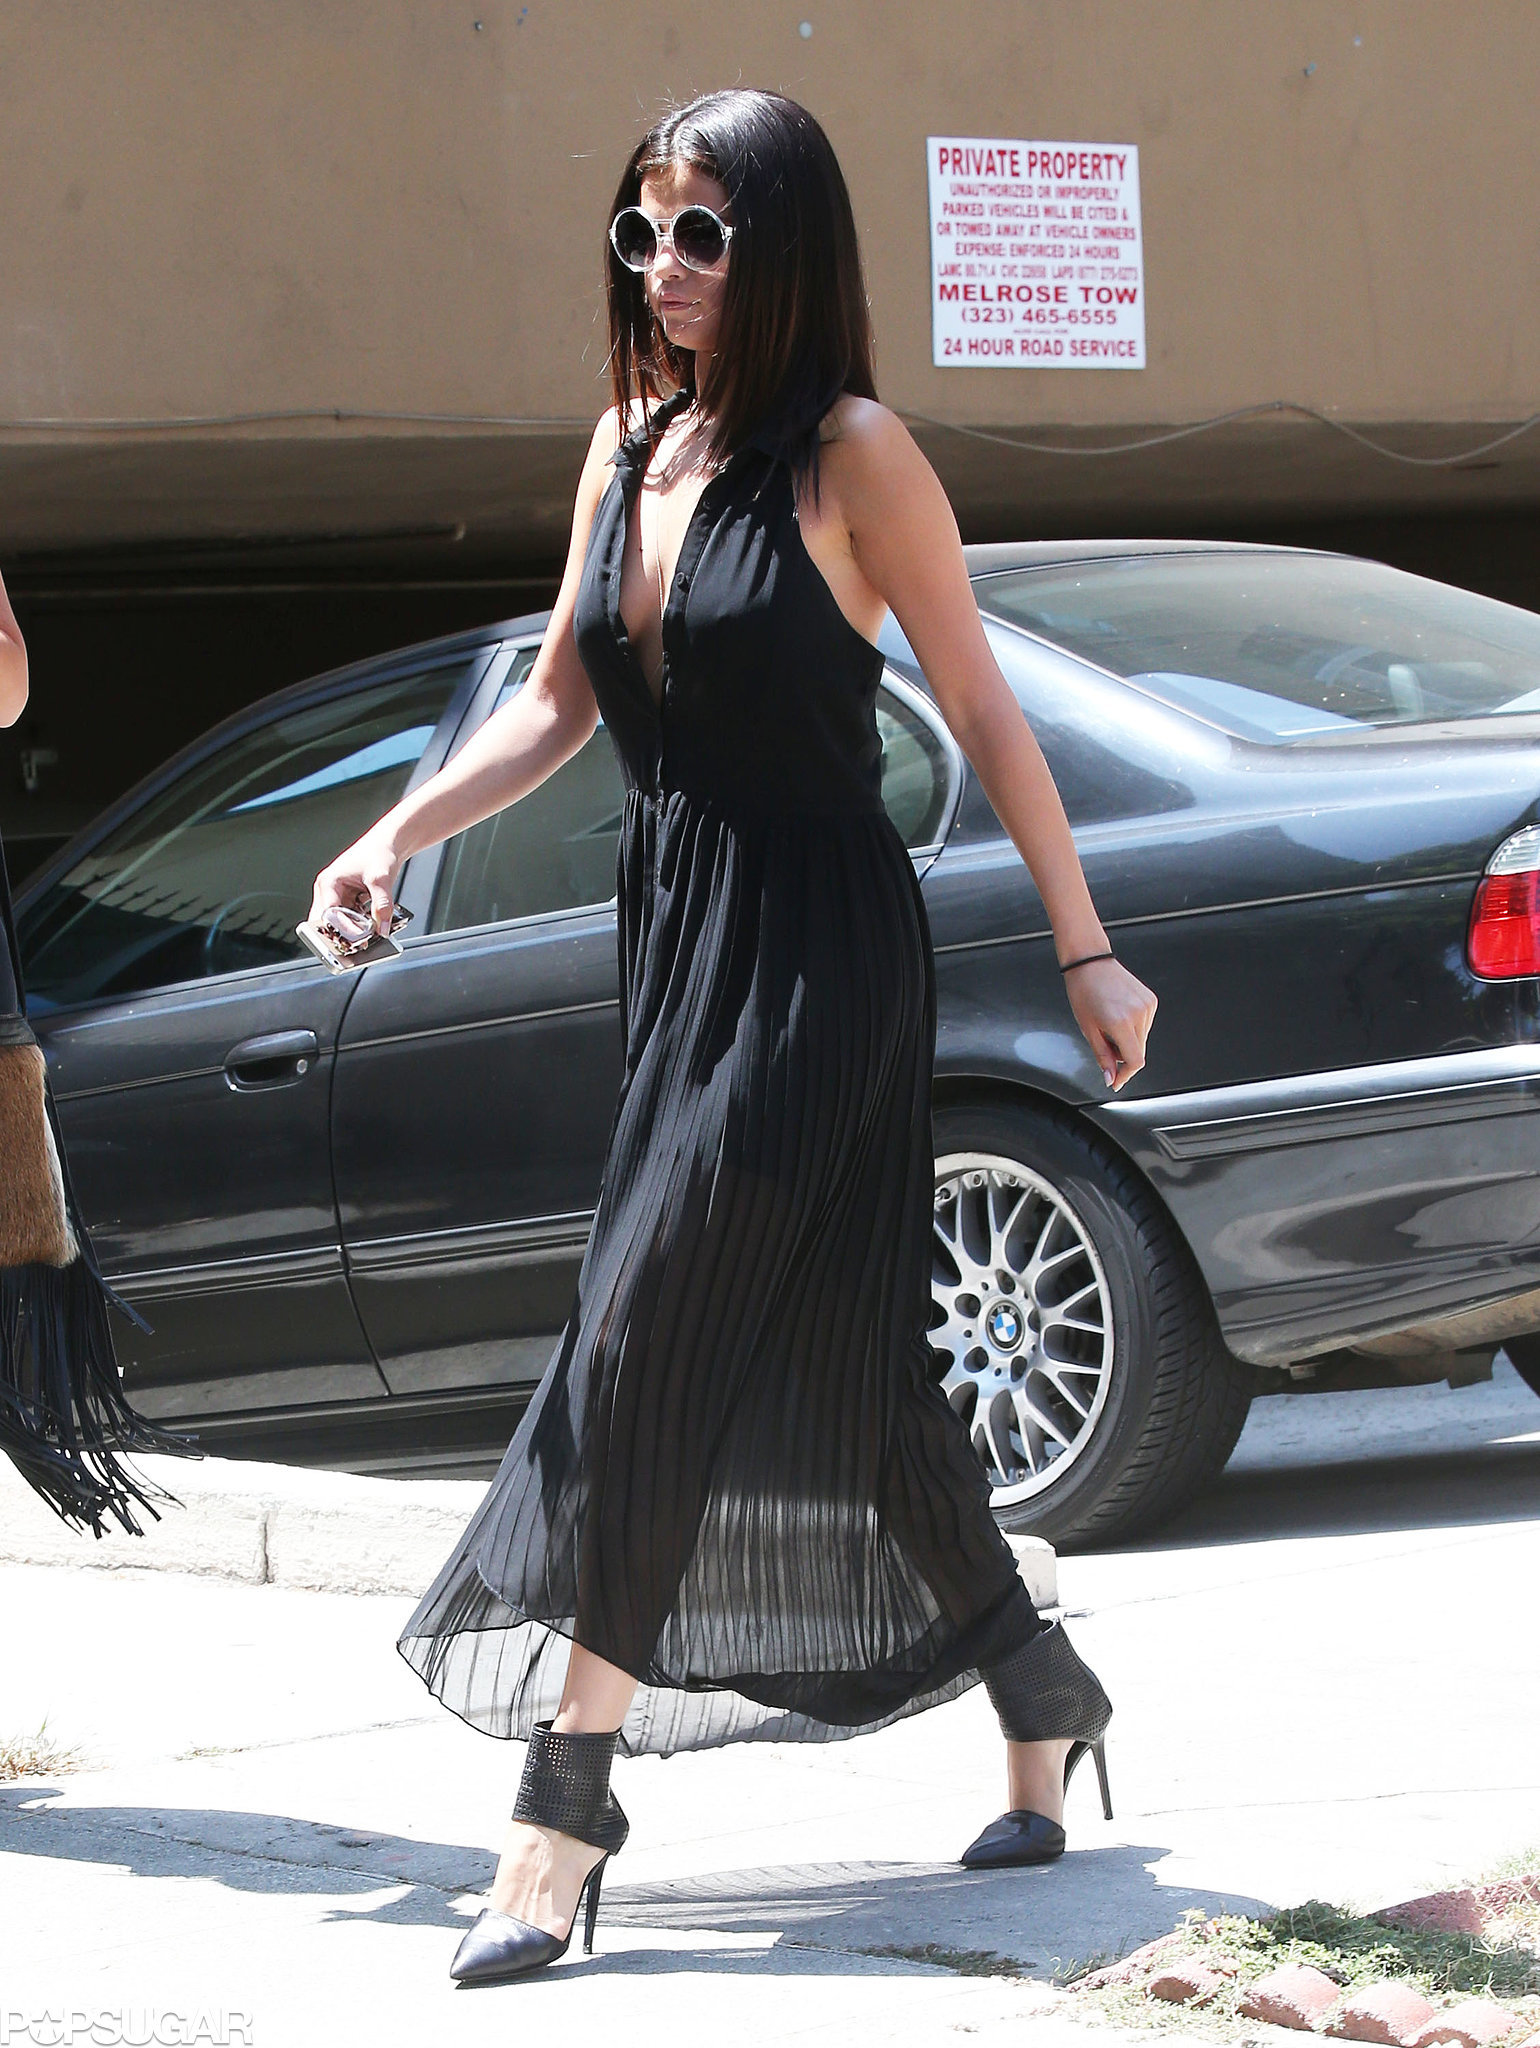 Selena Gomez donned a black dress when she stepped out in LA on Friday.